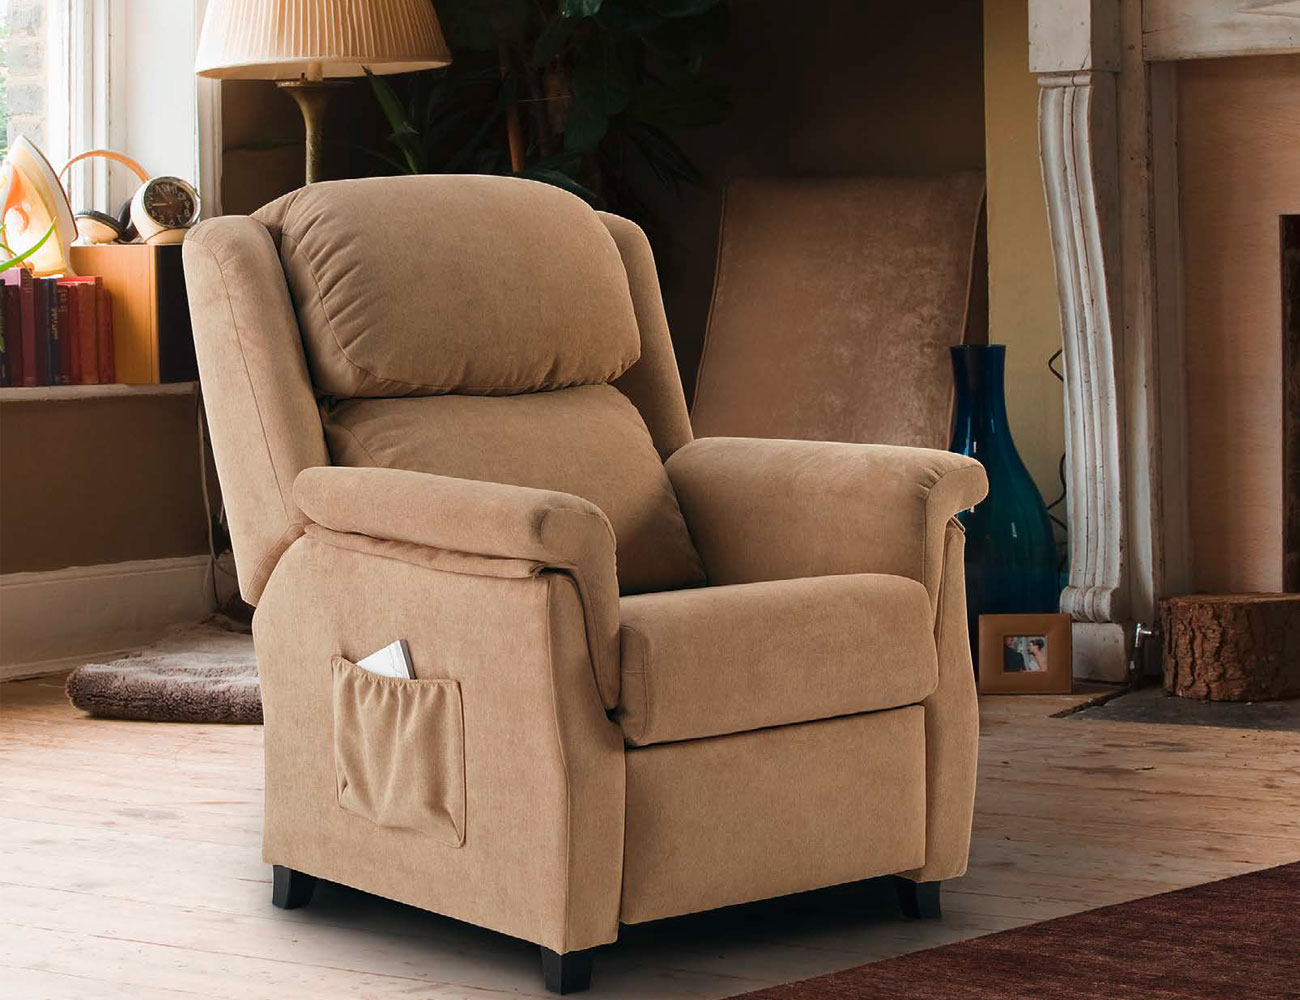 Sillon relax manual bianca 112